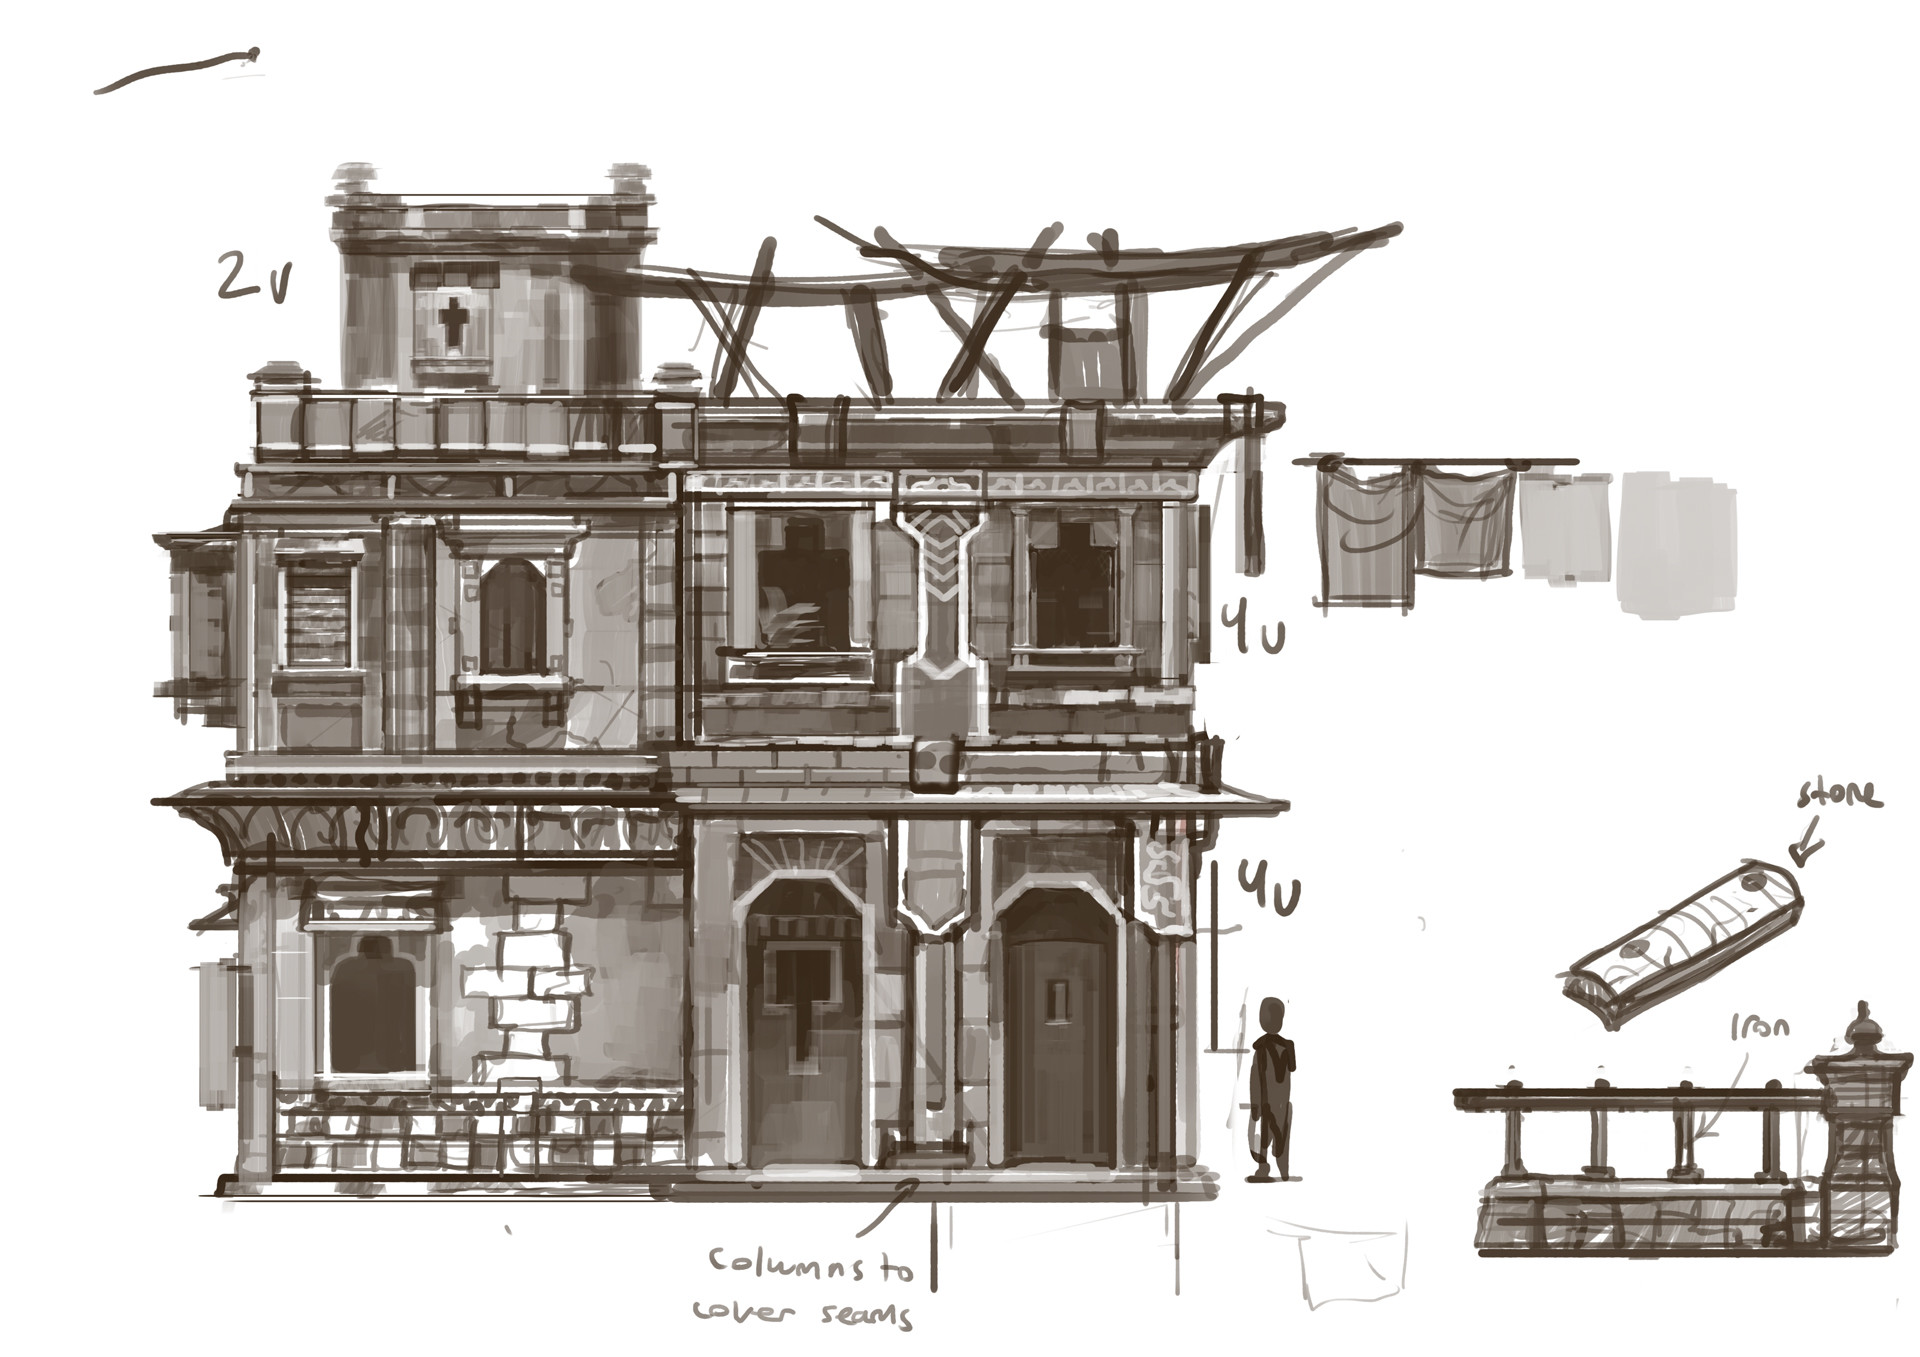 Building kit sketch to figure out how to build the houses in Zaber.